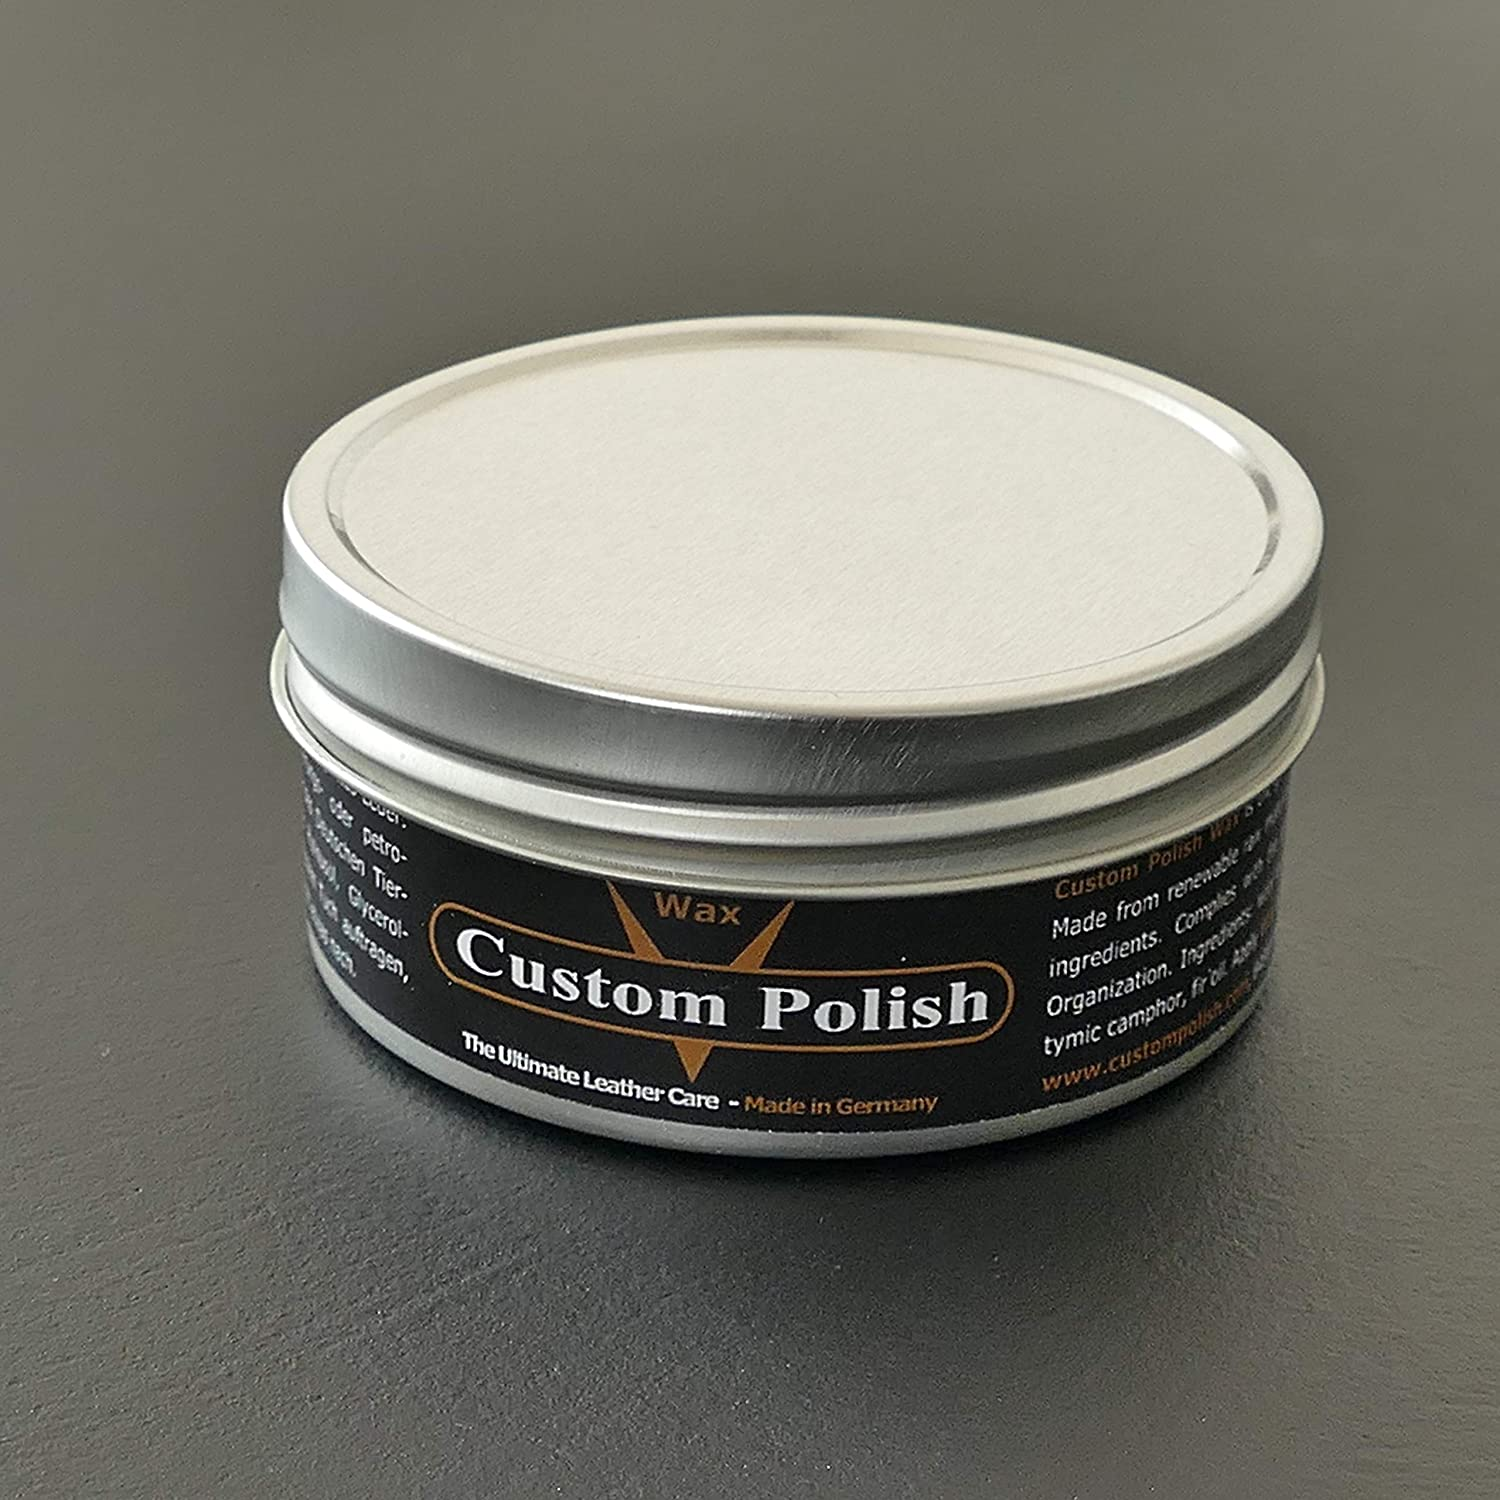 CUSTOM POLISH Wax - 150 ML - El Cuidado Natural e Innovador para ...